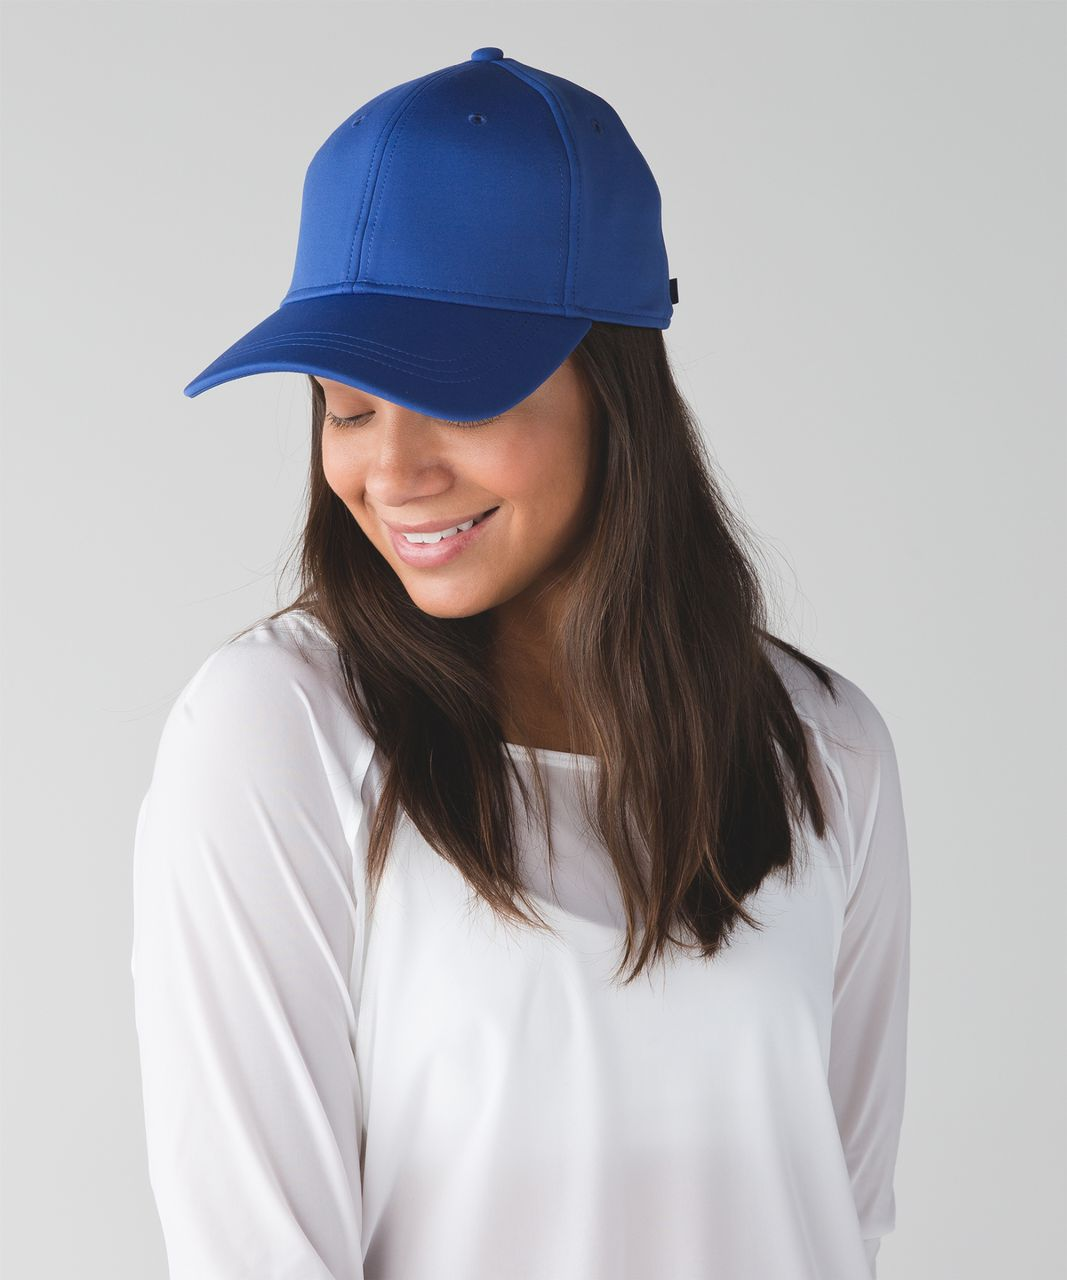 Lululemon Baller Hat - Rugged Blue